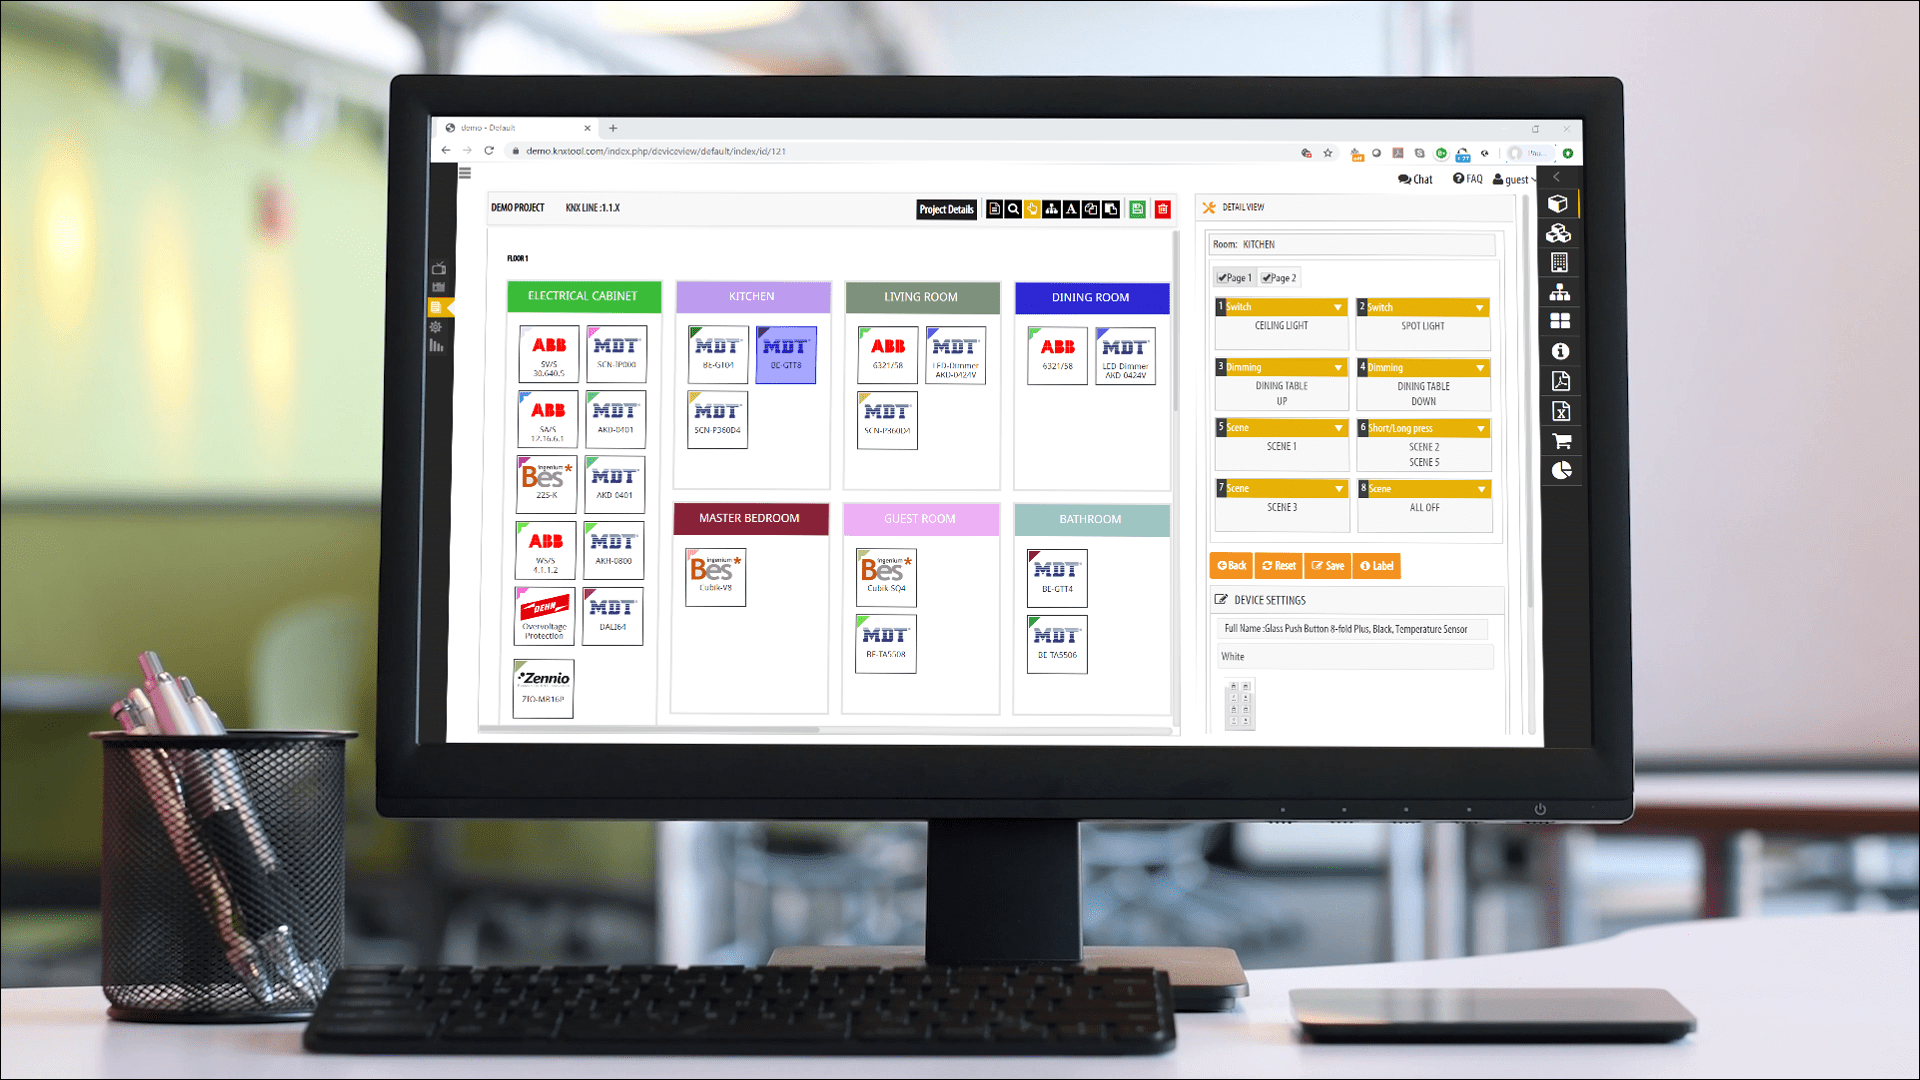 KNX Design and Planning - KNX Project Management Tool